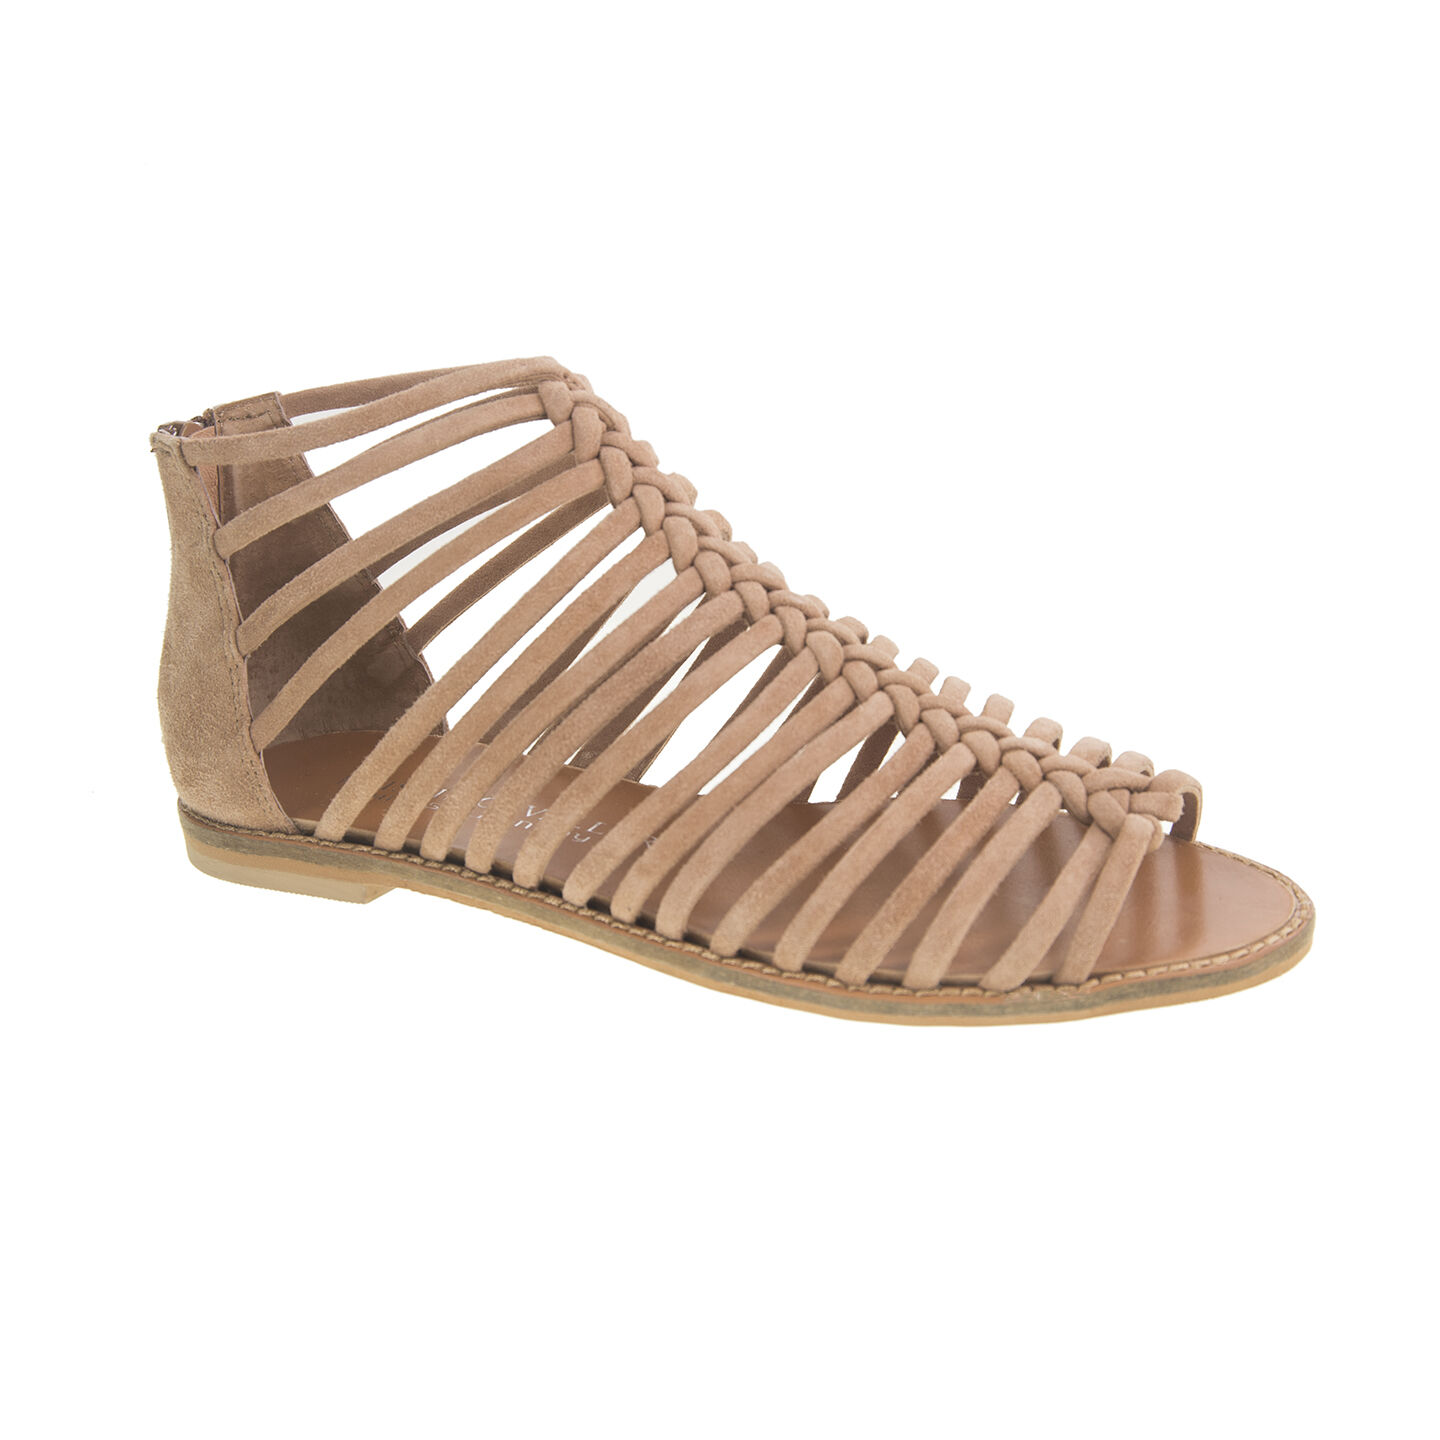 Kristin Cavallari by Chinese Laundry Bliss Suede Sandal